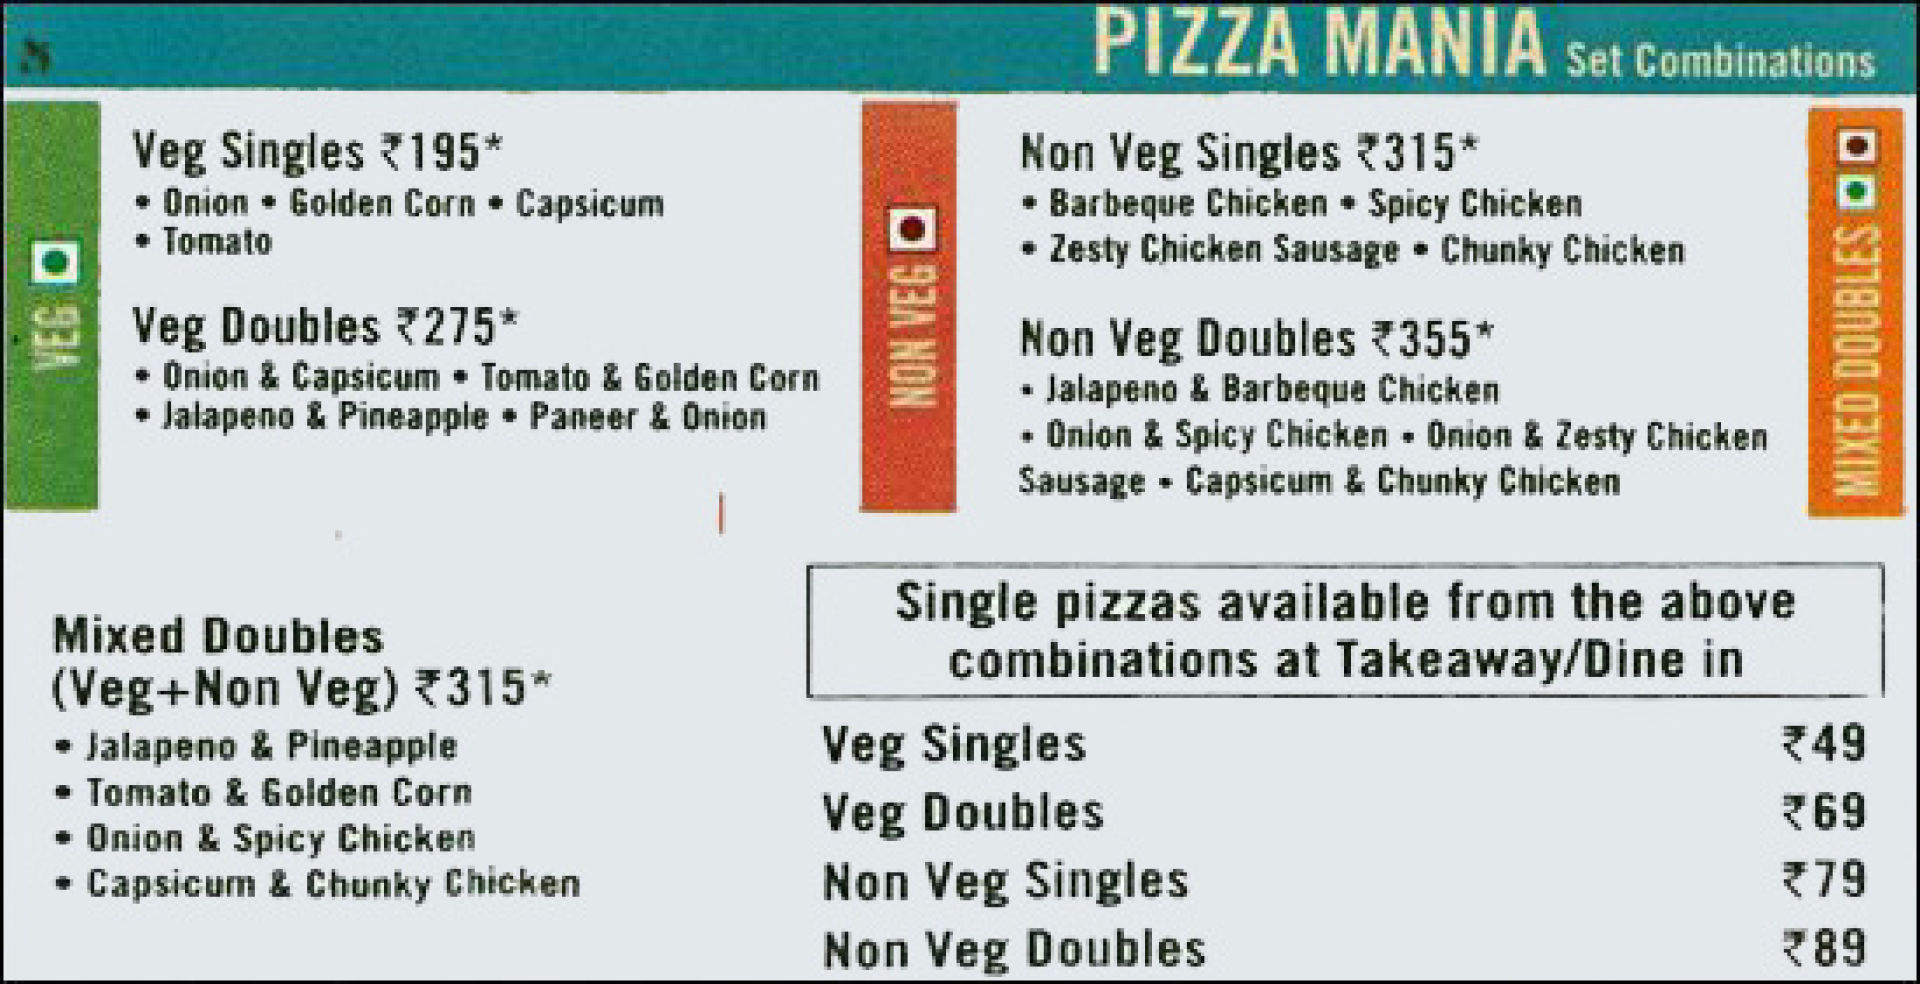 Menu of the Domino's Pizza